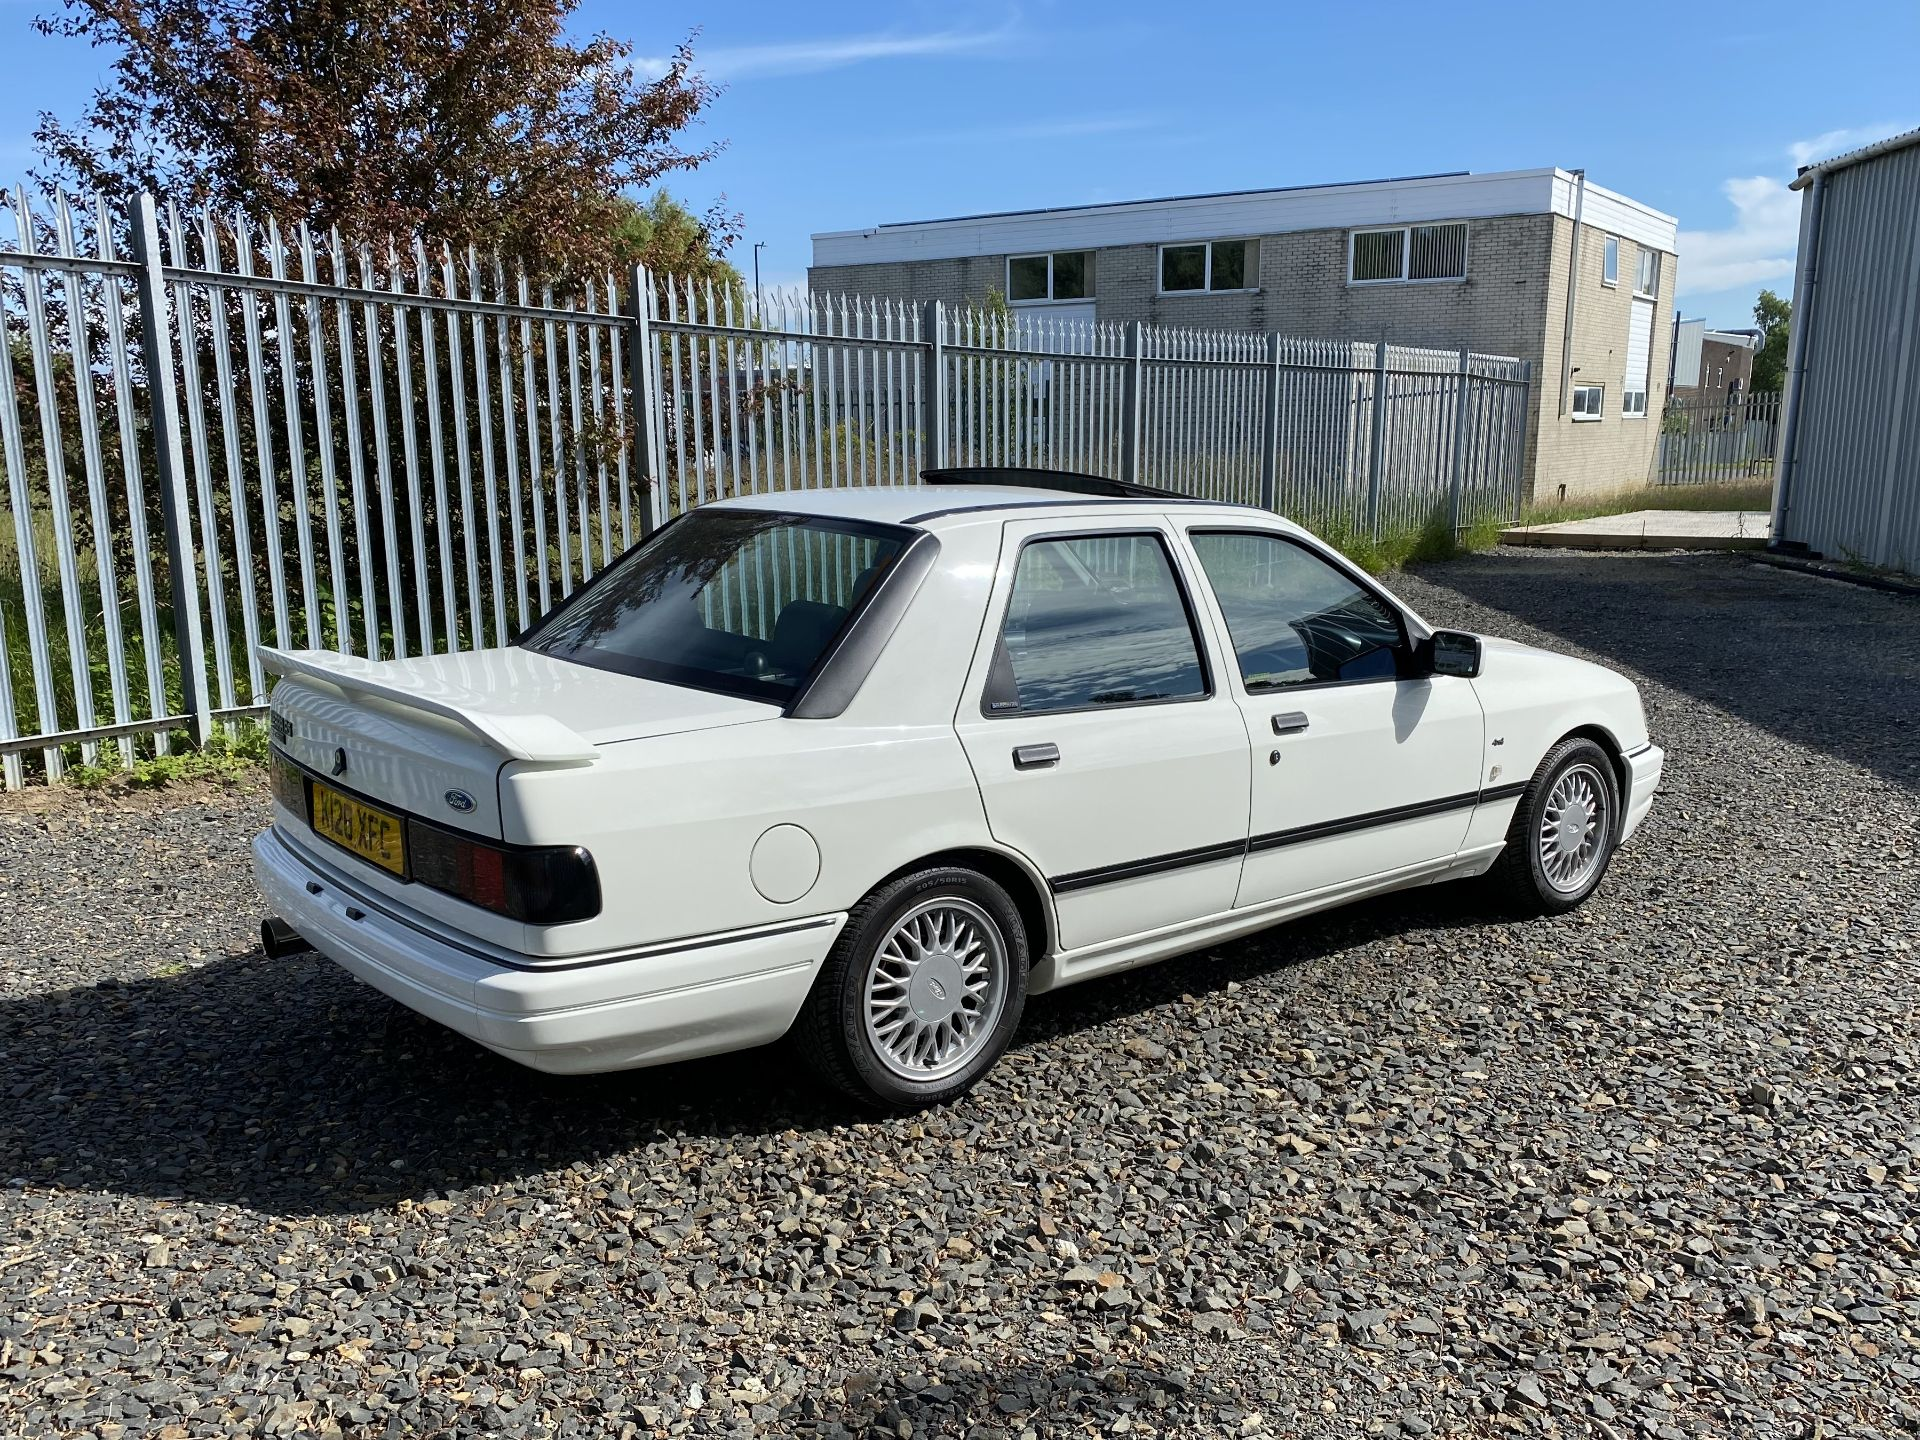 Ford Sierra Sapphire Cosworth 4x4 - Image 6 of 55